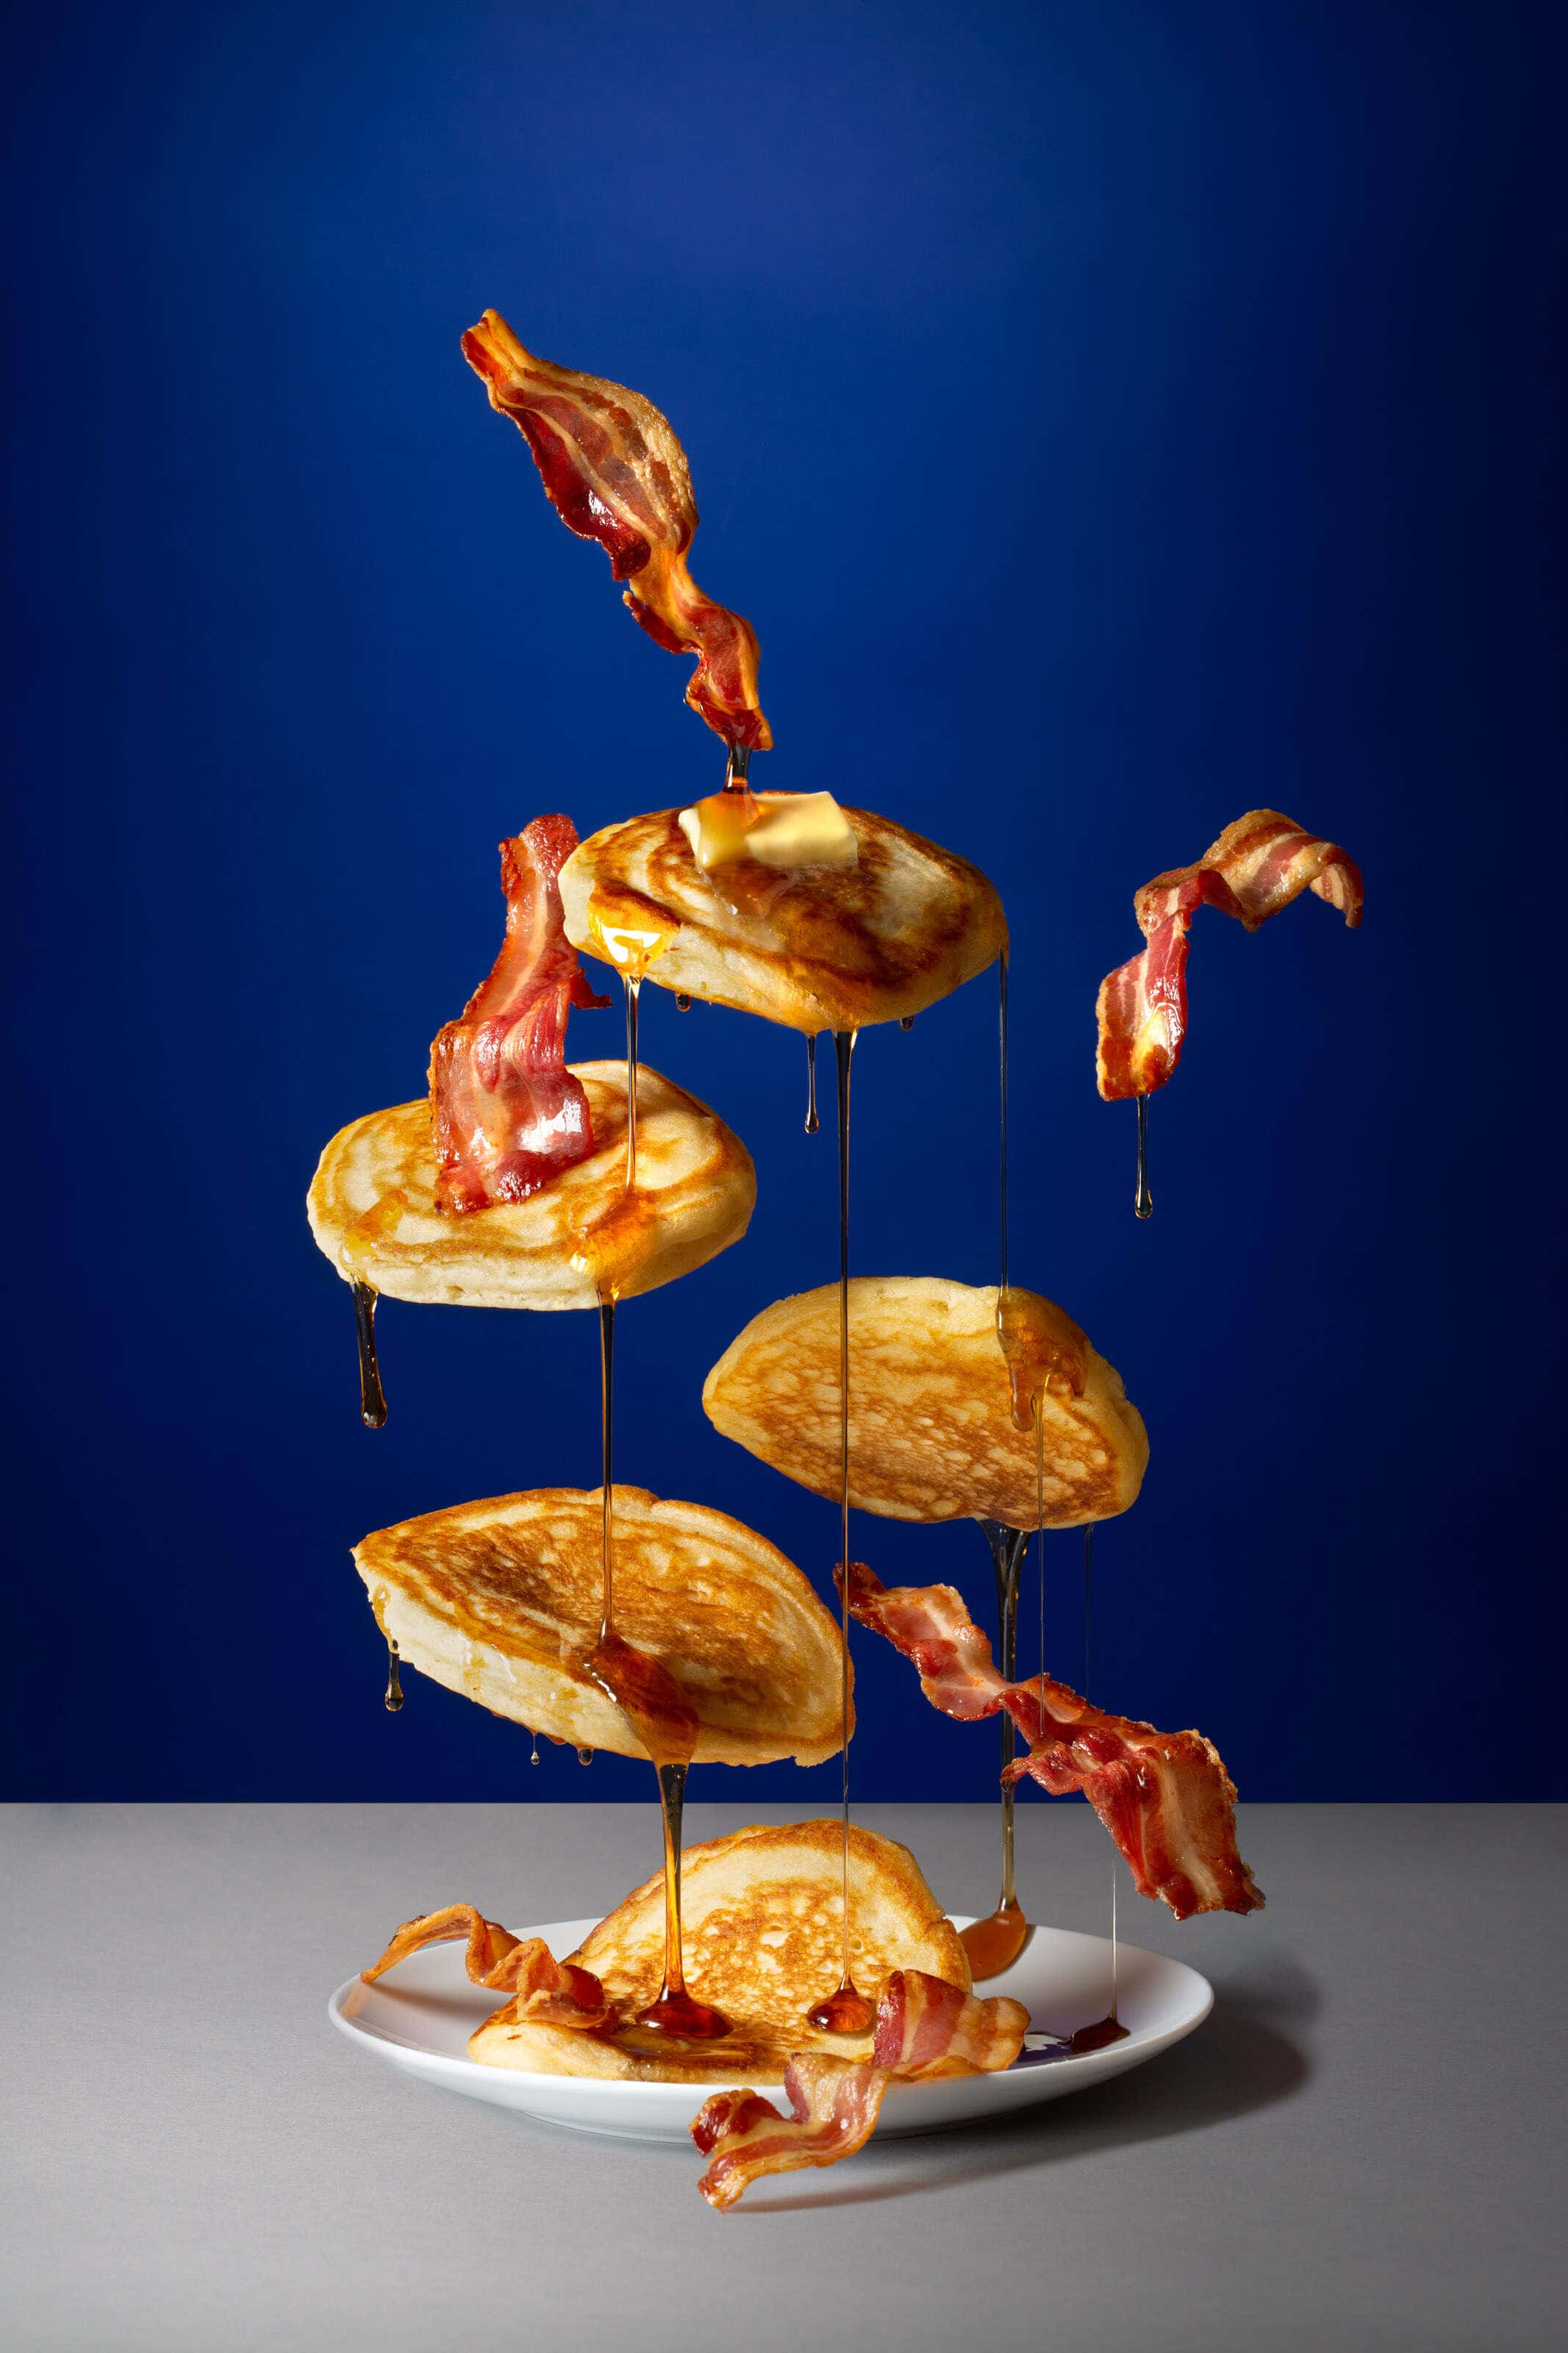 flying pancakes with butter and syrup